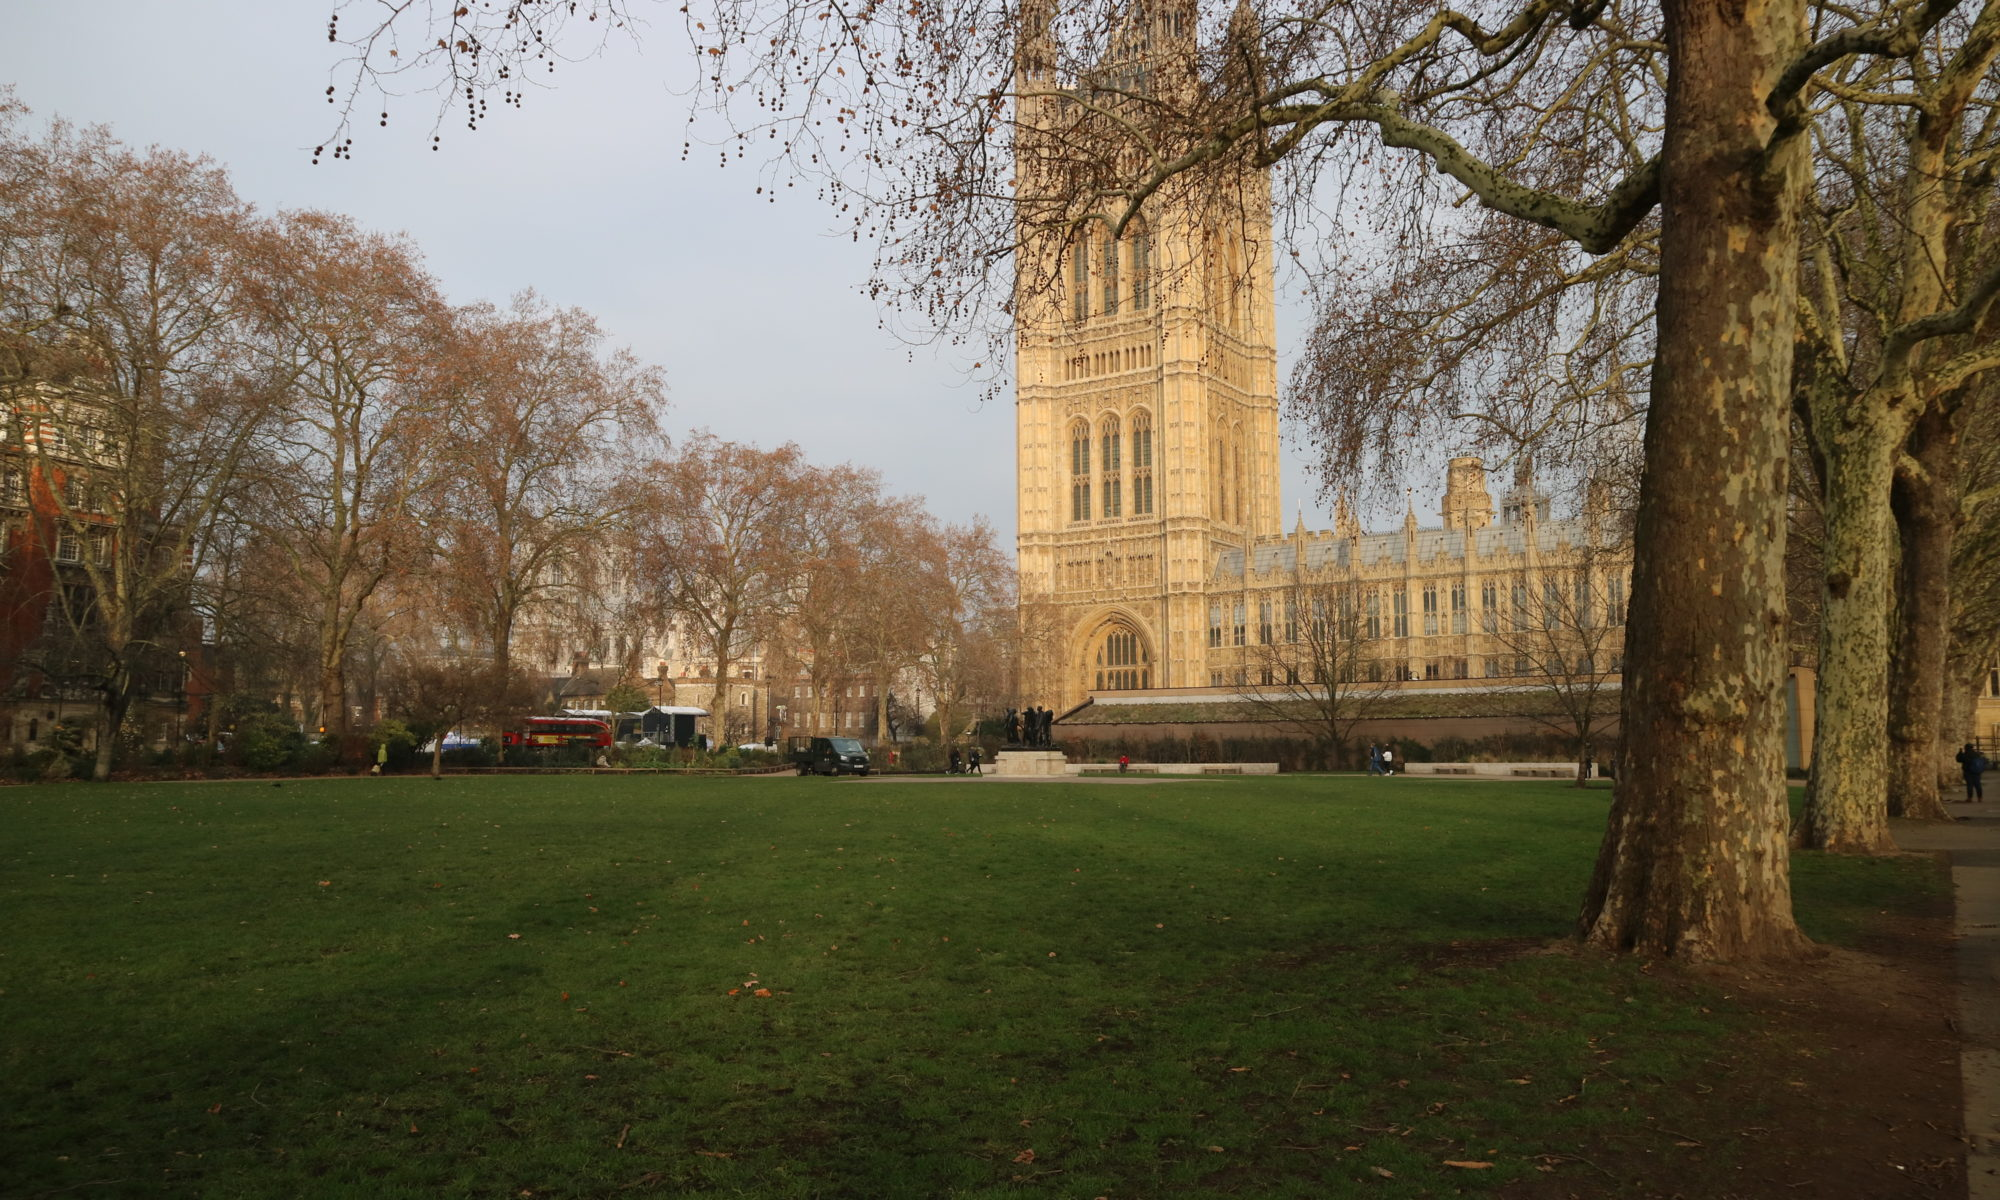 parliament and embankment